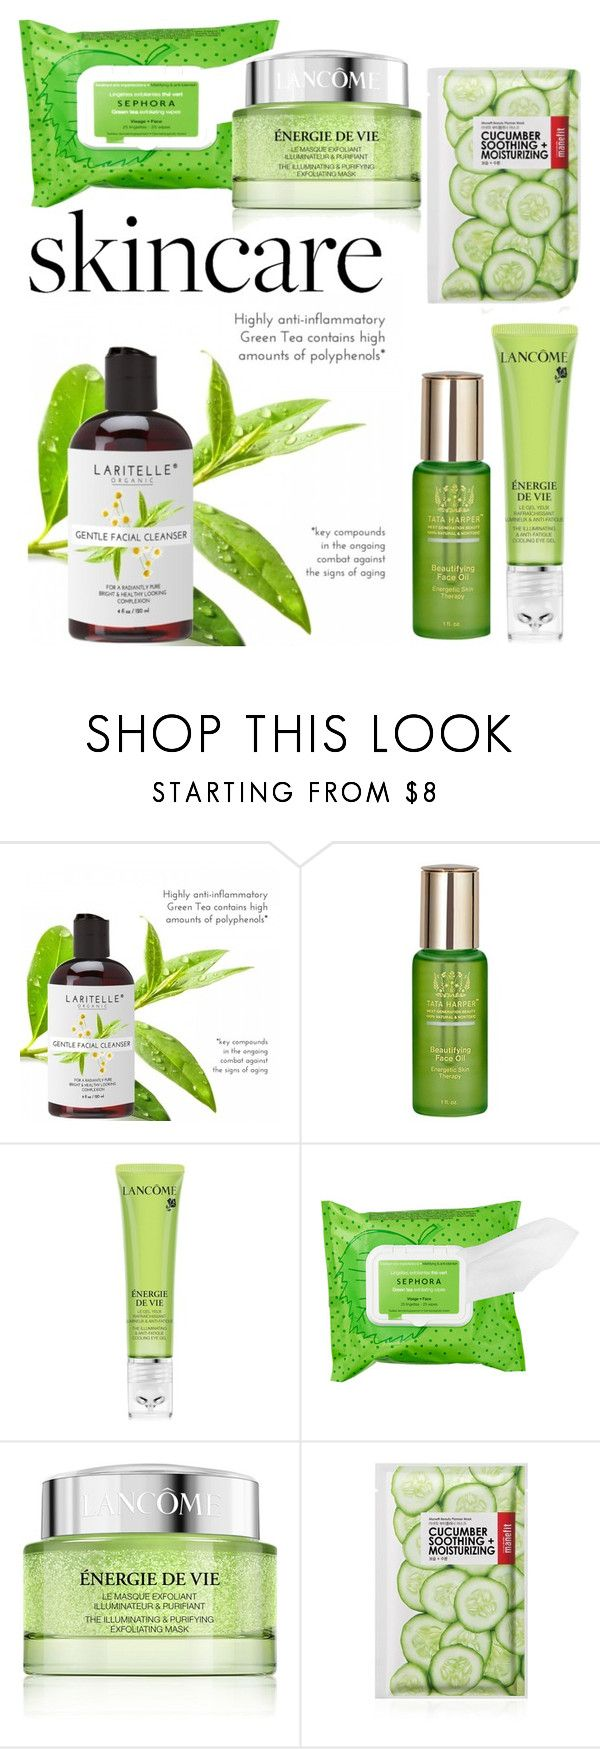 """""""#Skincare 💚"""" by gomes21 ❤ liked on Polyvore featuring beauty, SkinCare, Tata Harper, Lancôme, Sephora Collection and Forever 21"""